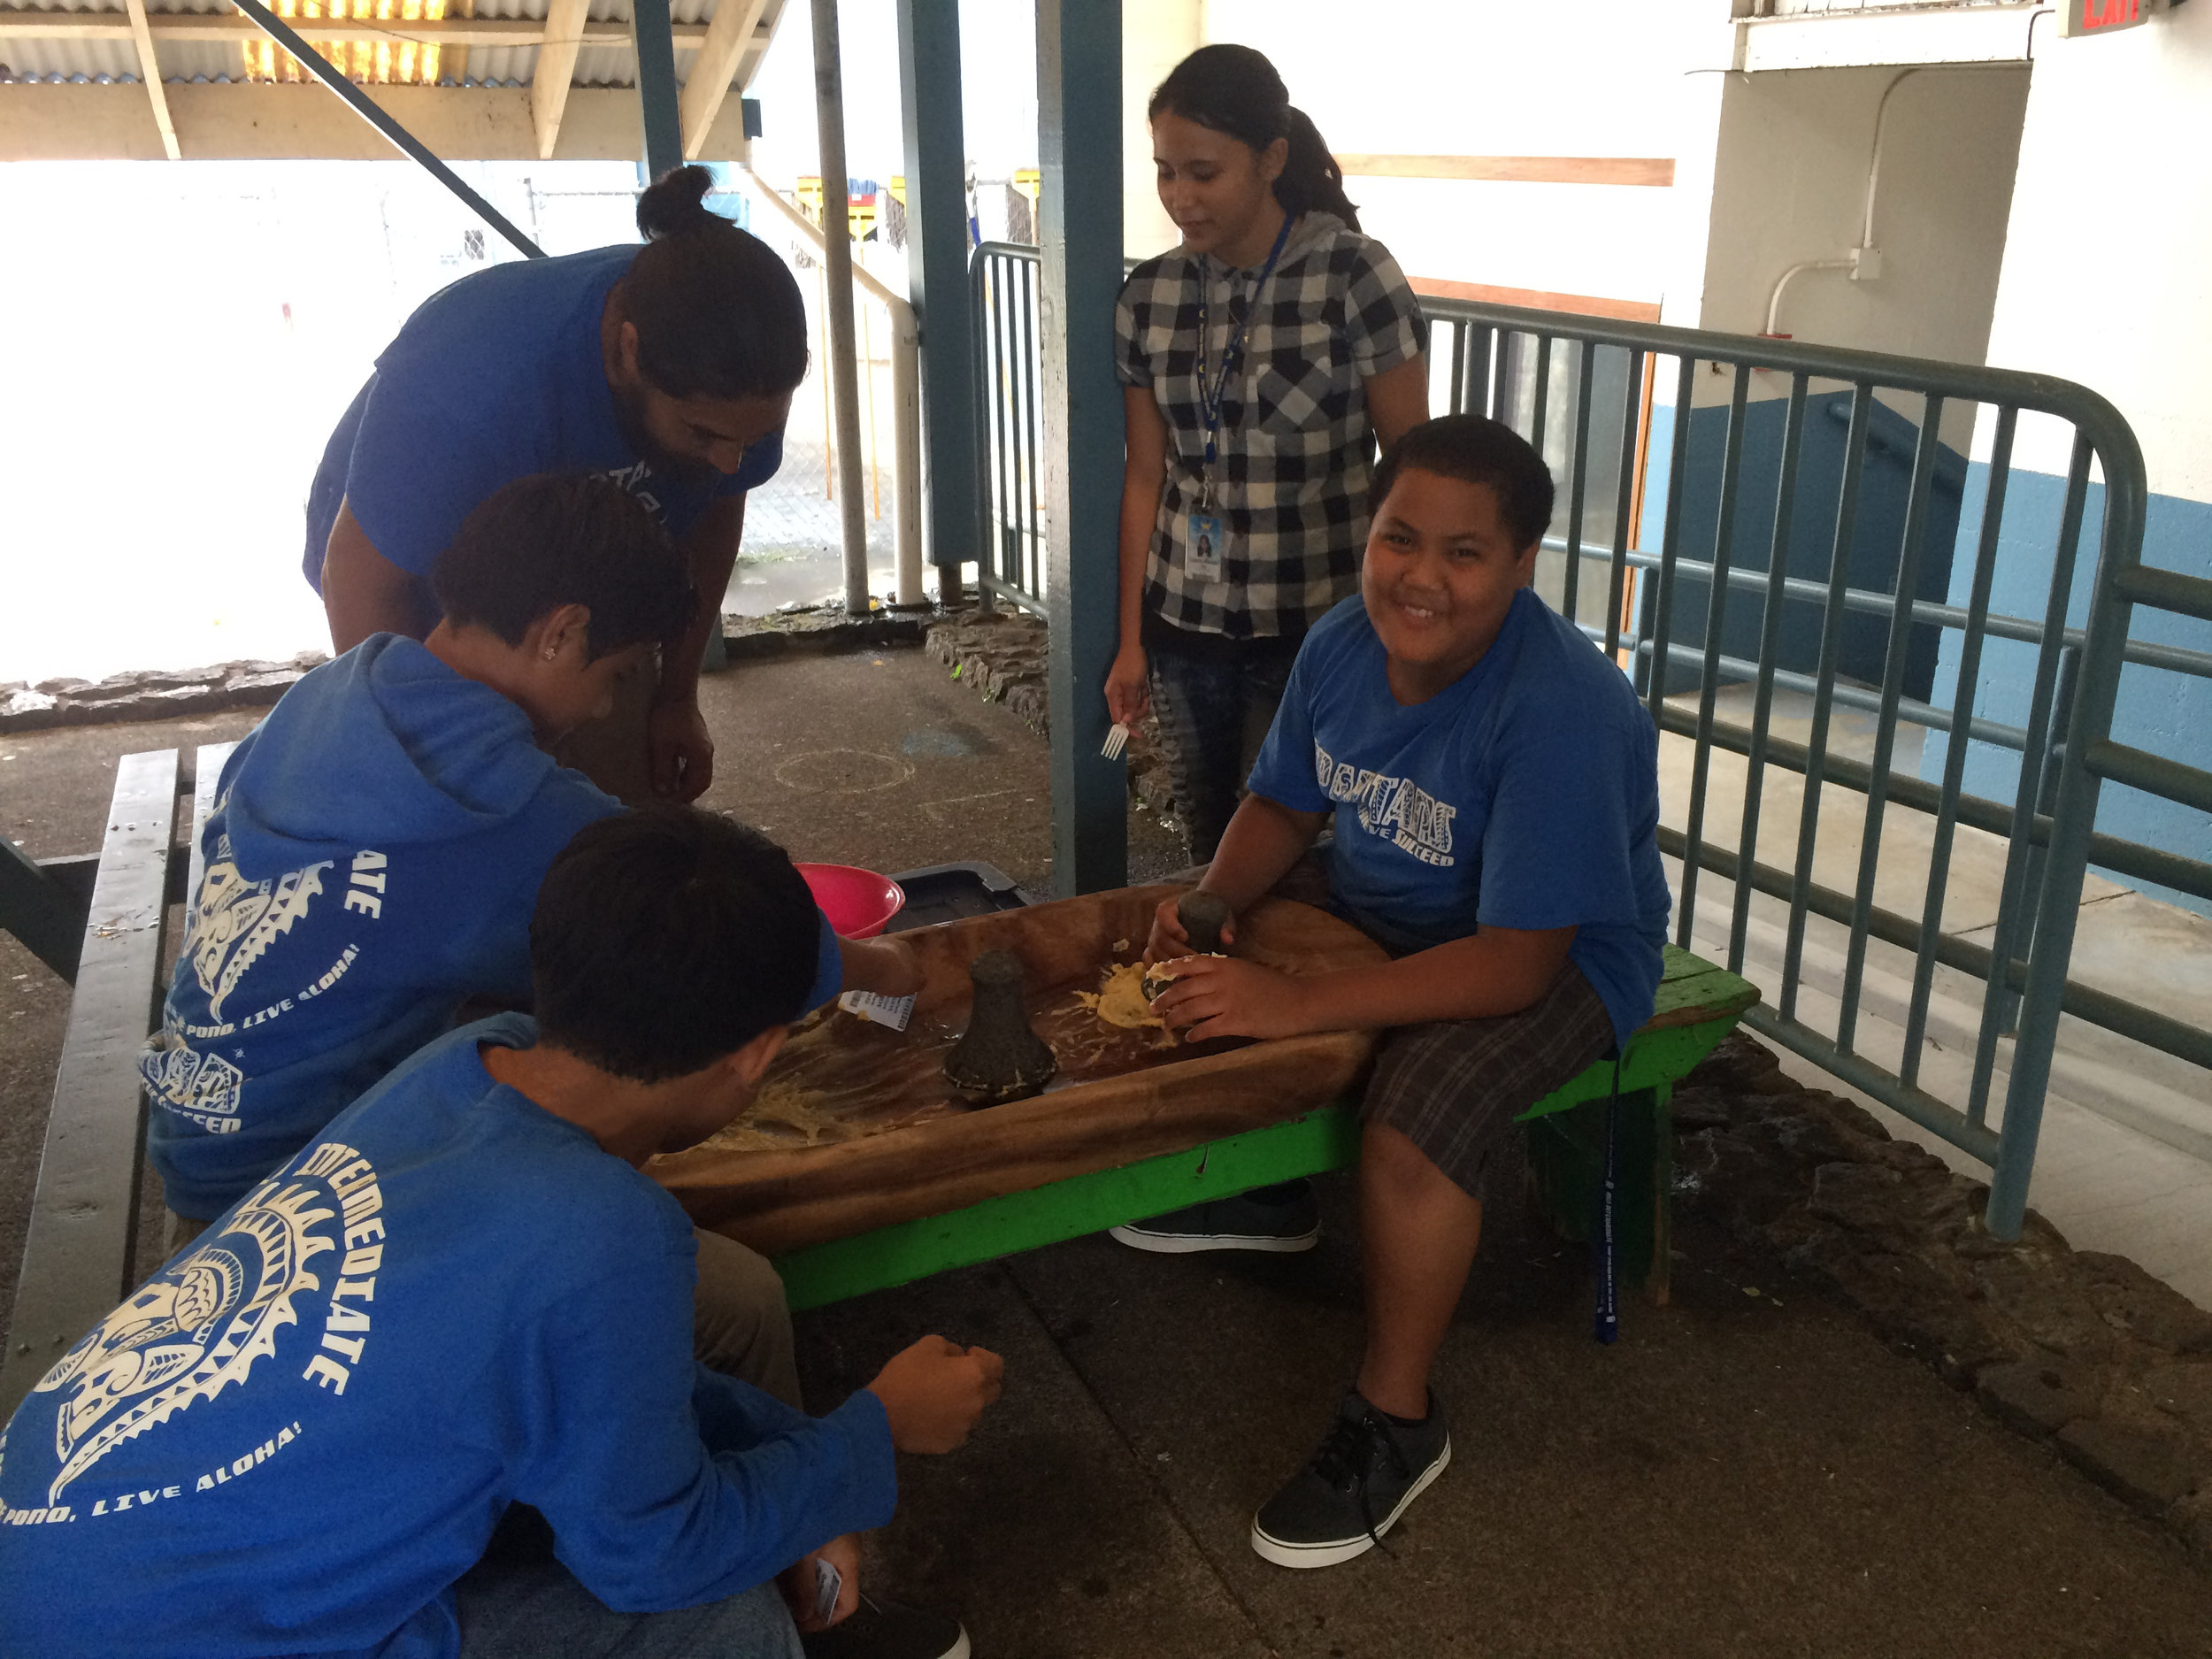 Teens participating in cultural-based activity.